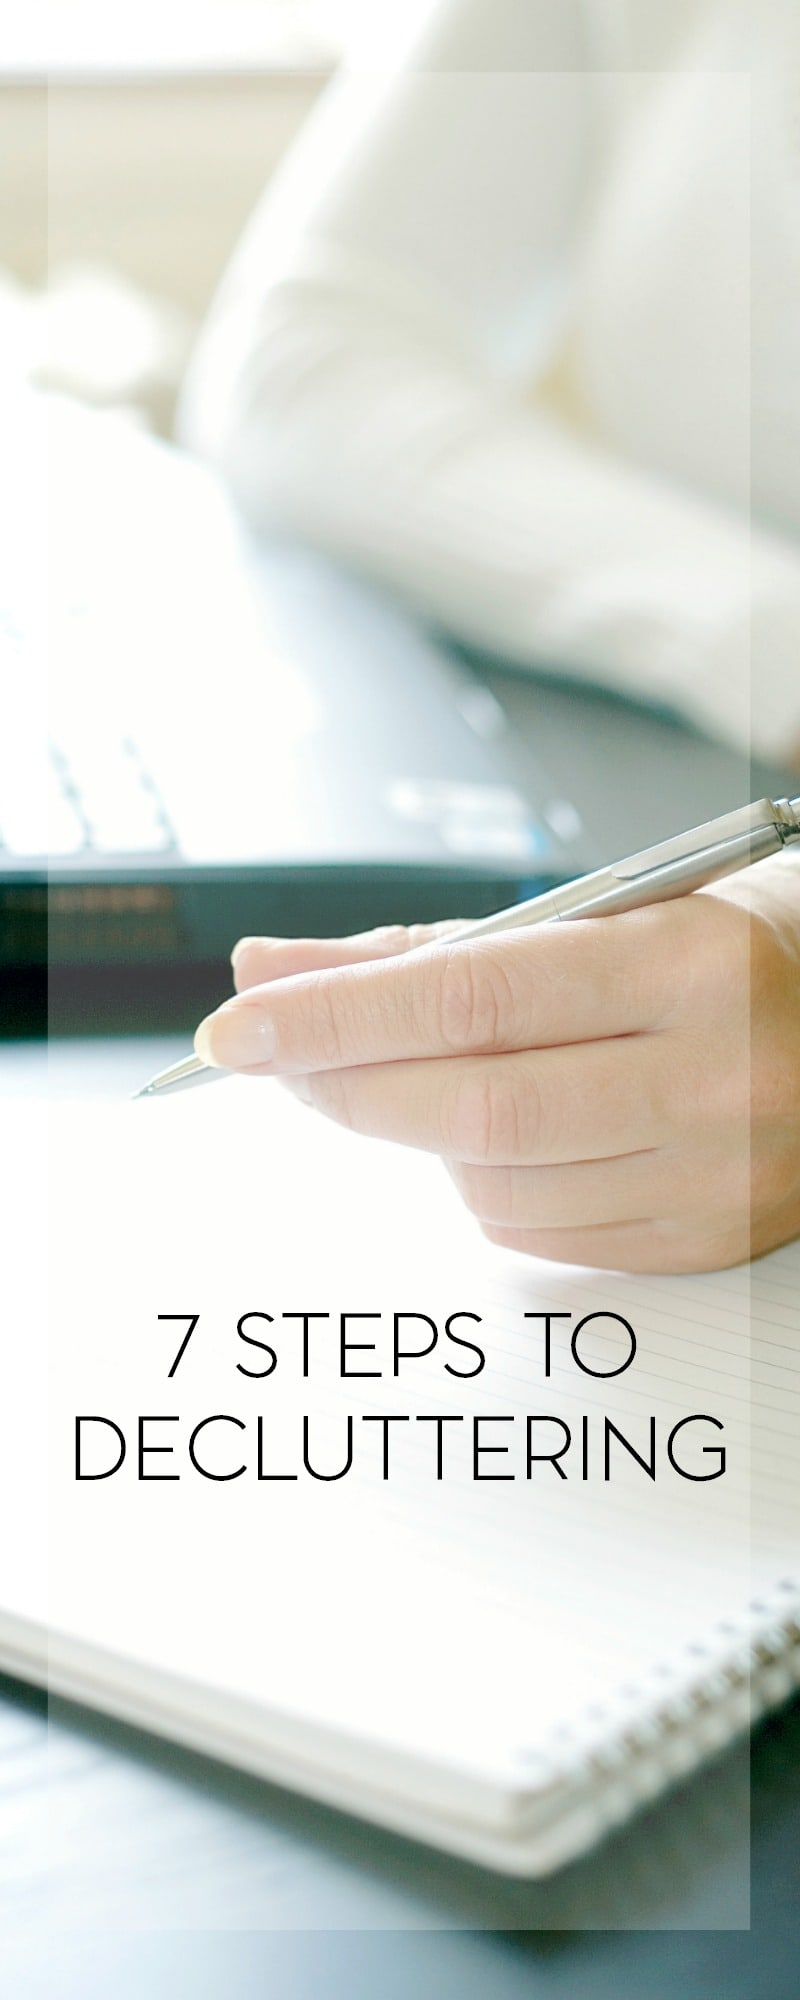 7 Steps to Decluttering 1